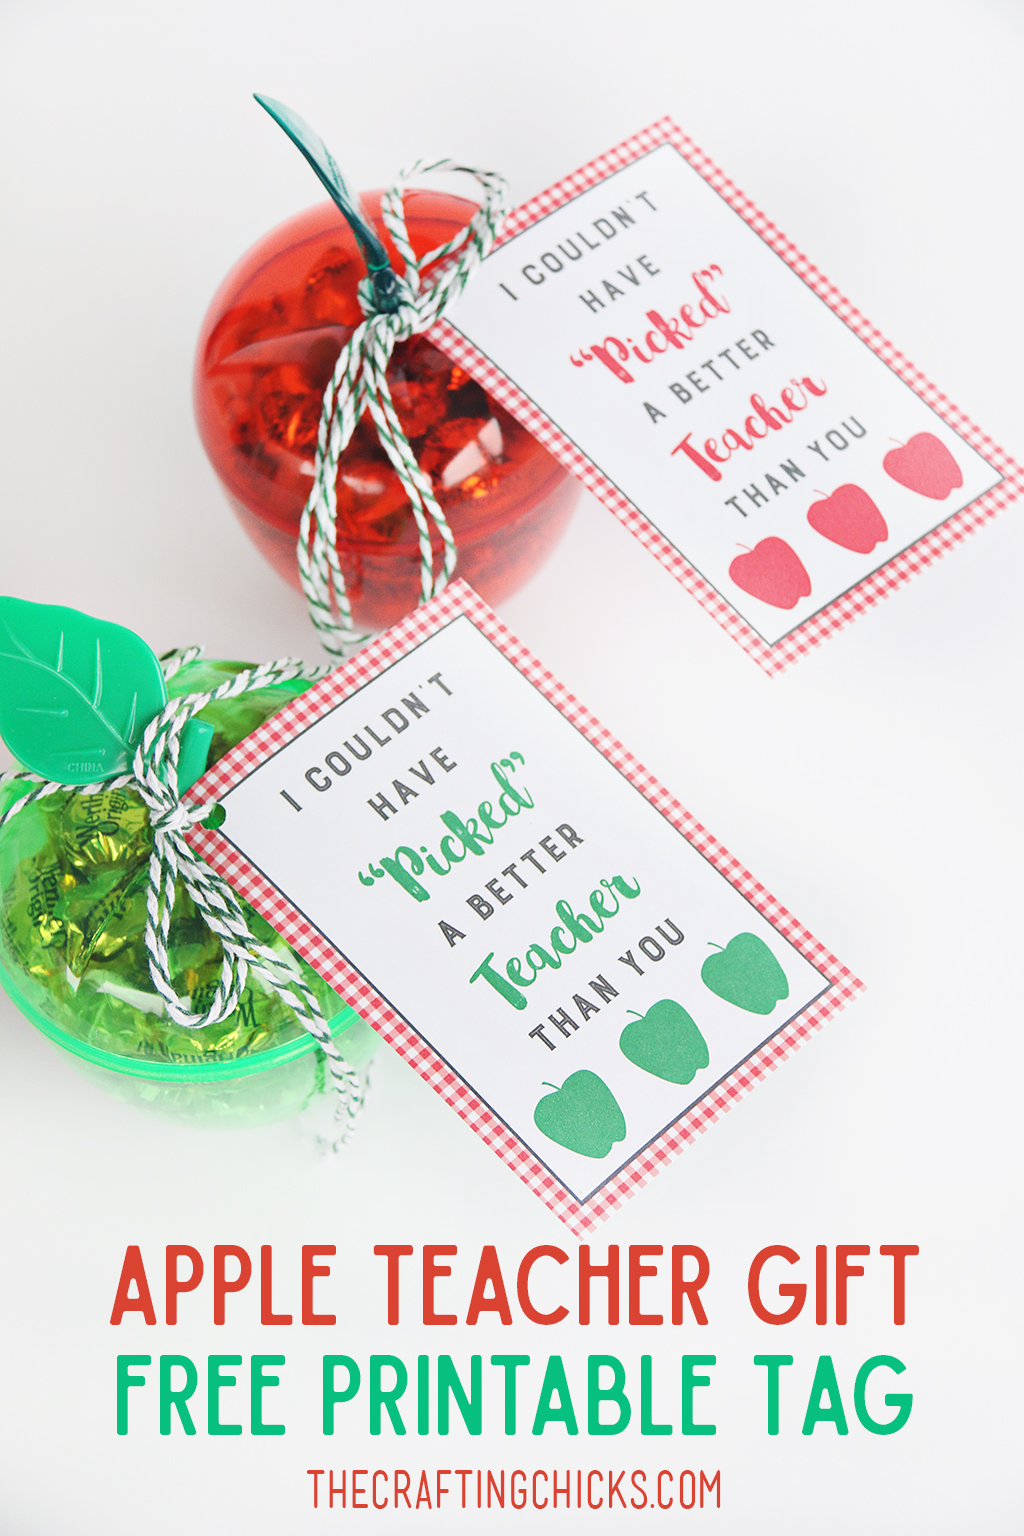 photo regarding Free Printable Teacher Gift Tags identified as Apple Trainer Present Tag Printable - The Creating Chicks